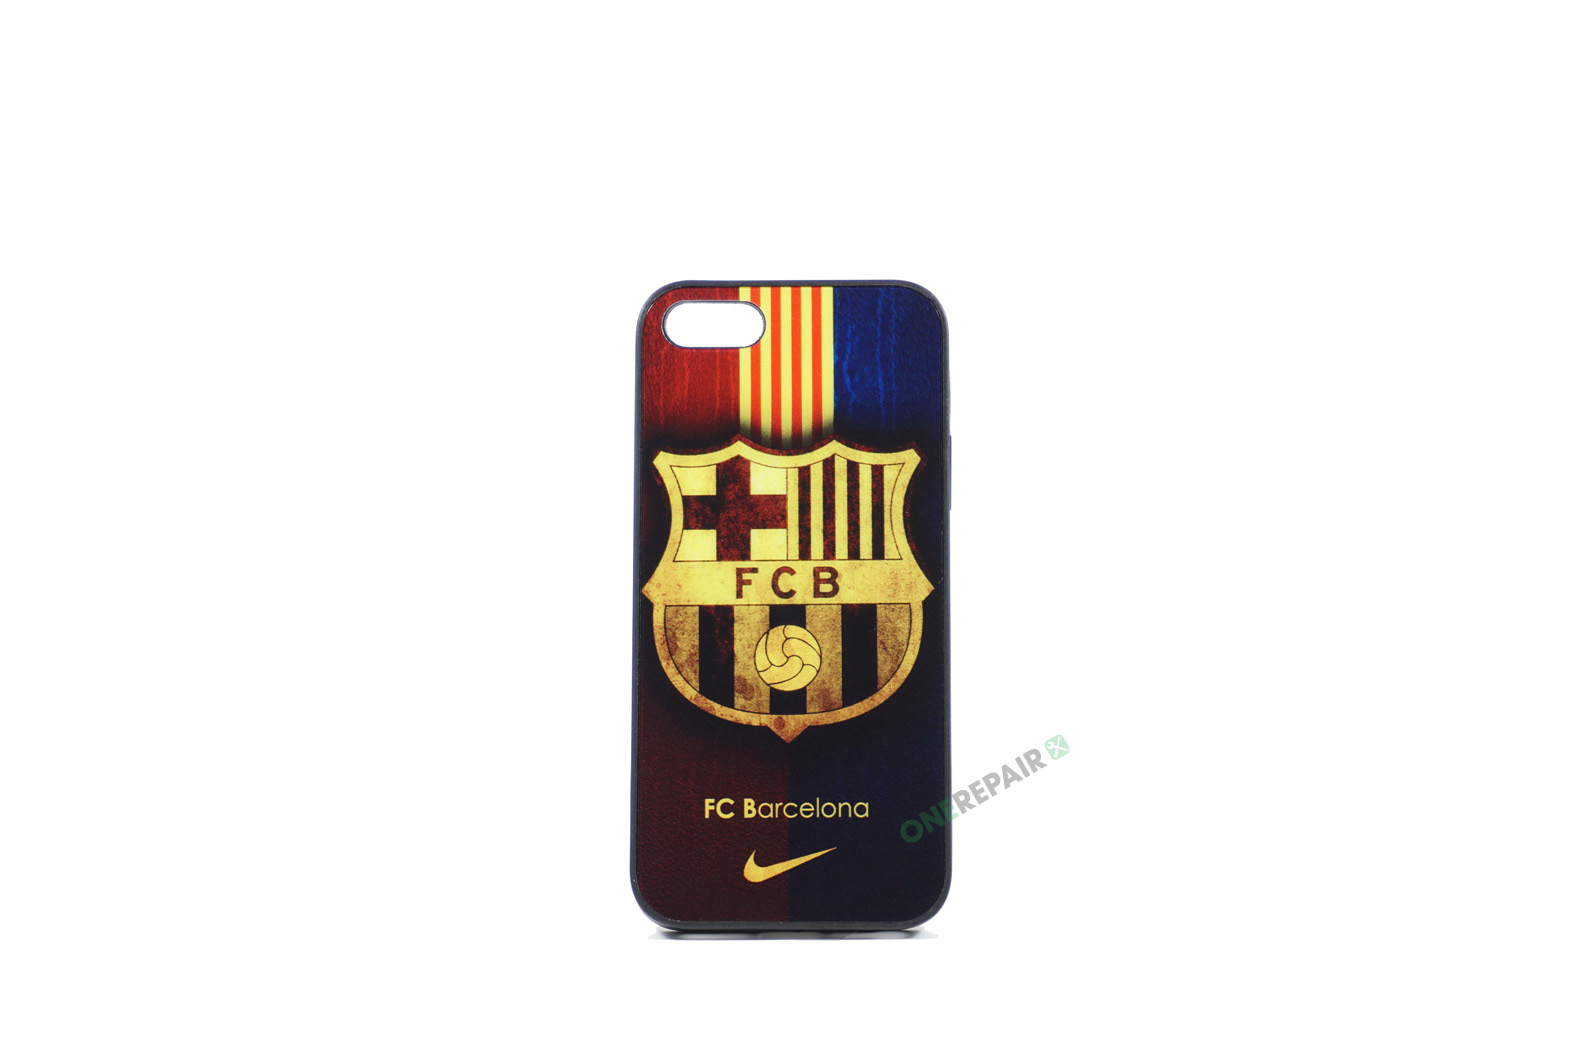 Billig iPhone 5 5S SE Cover Bagcover Gummicover A1453 A1457 A1518 A1528 A1530 A1533 A1428 A1429 A1442 A1723 A1662 A1724 FC Barcelona FCB Fodbold Klub